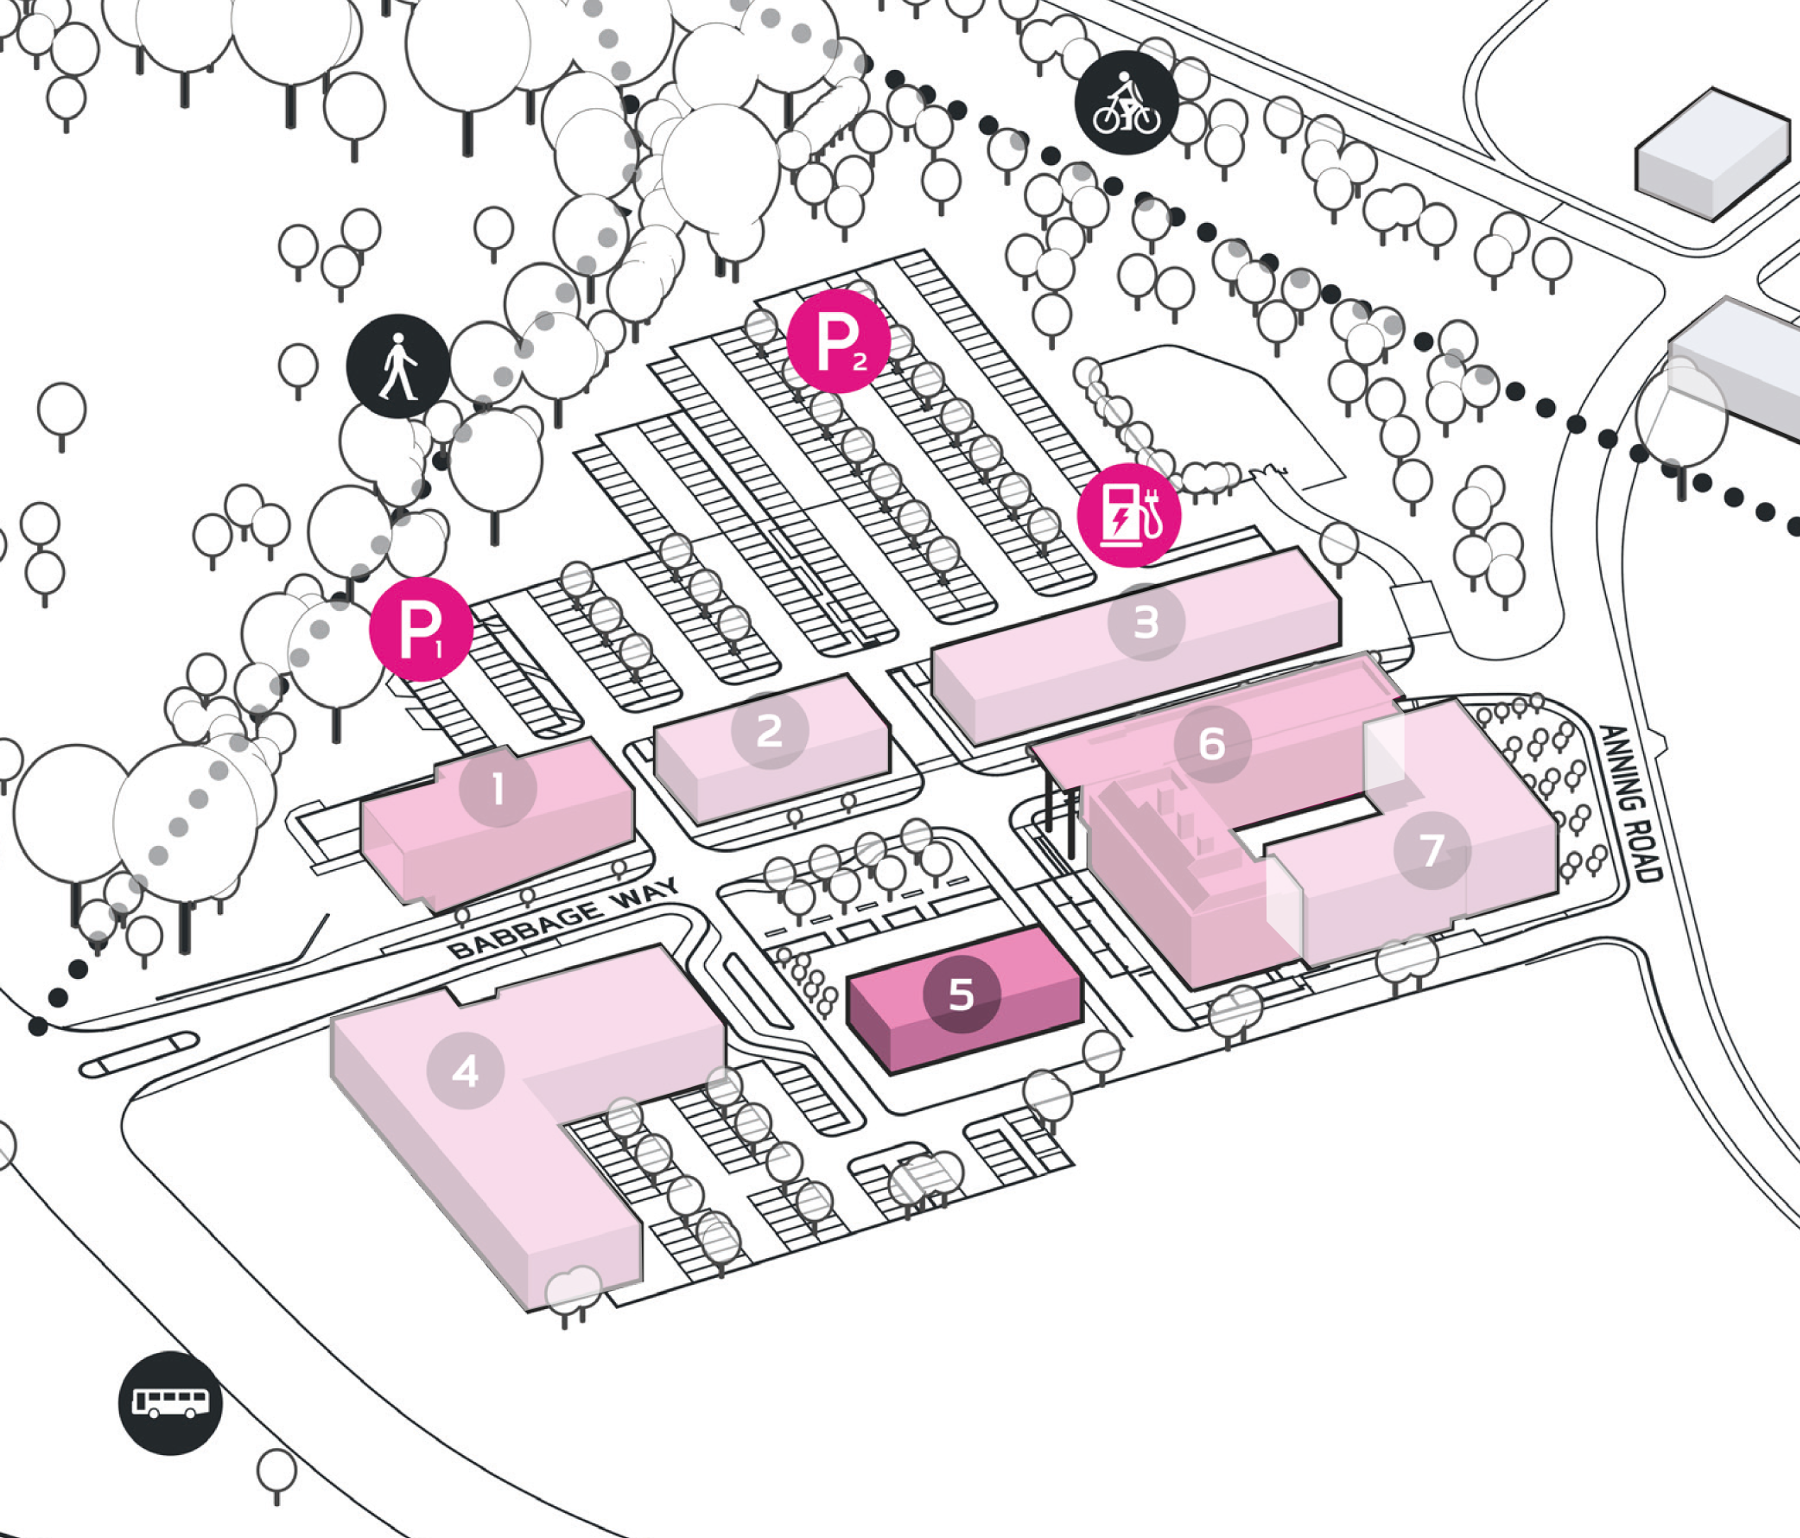 Park Plan highlighting cluster A Building 5